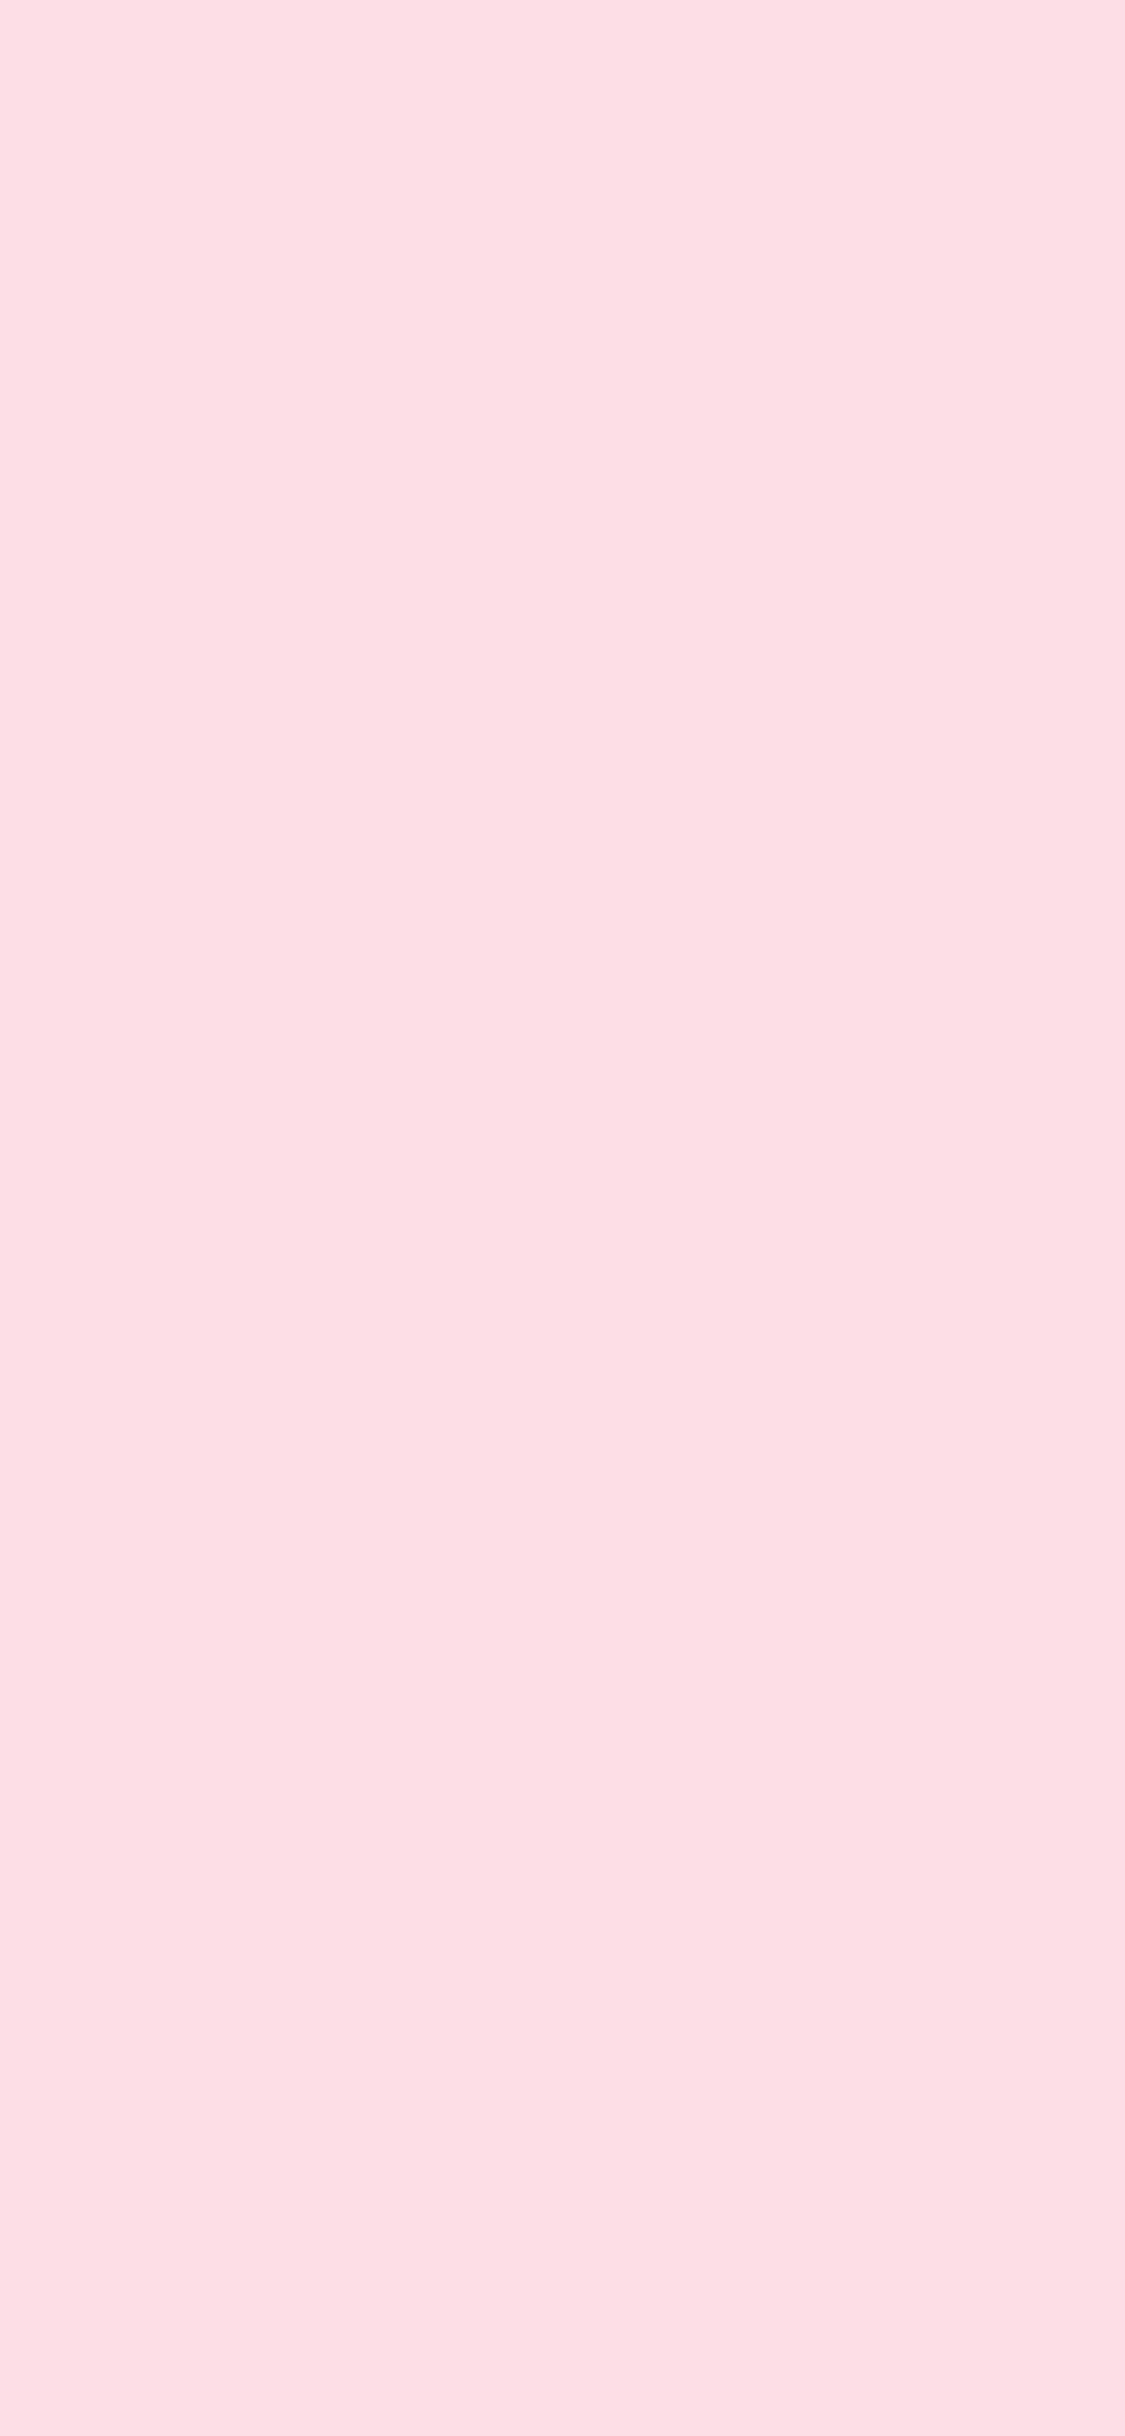 1125x2436 Piggy Pink Solid Color Background